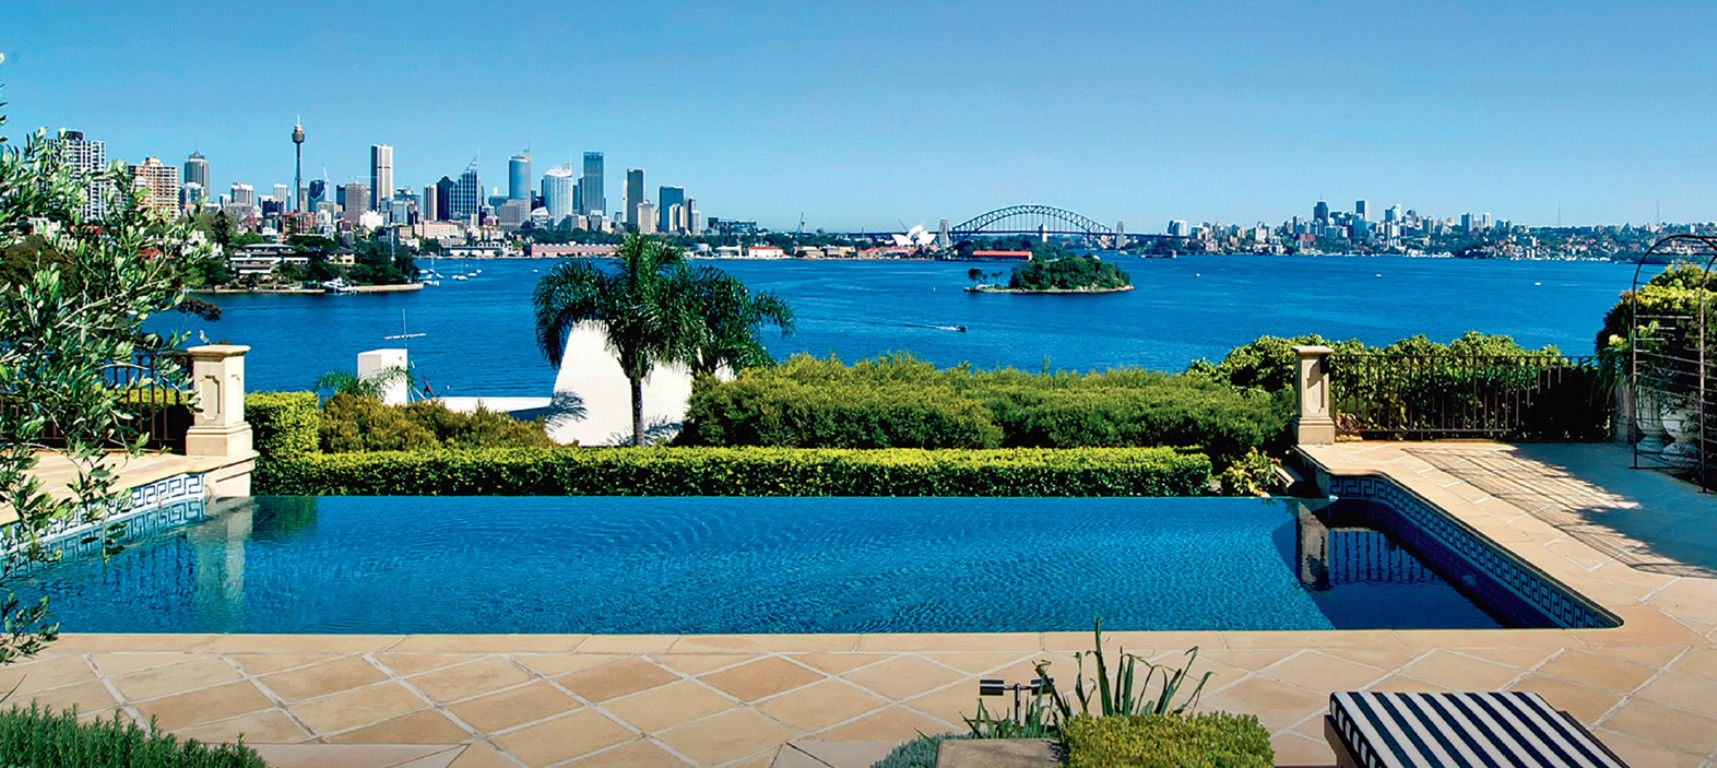 Mansion Australia -  Finding growth in a mature market